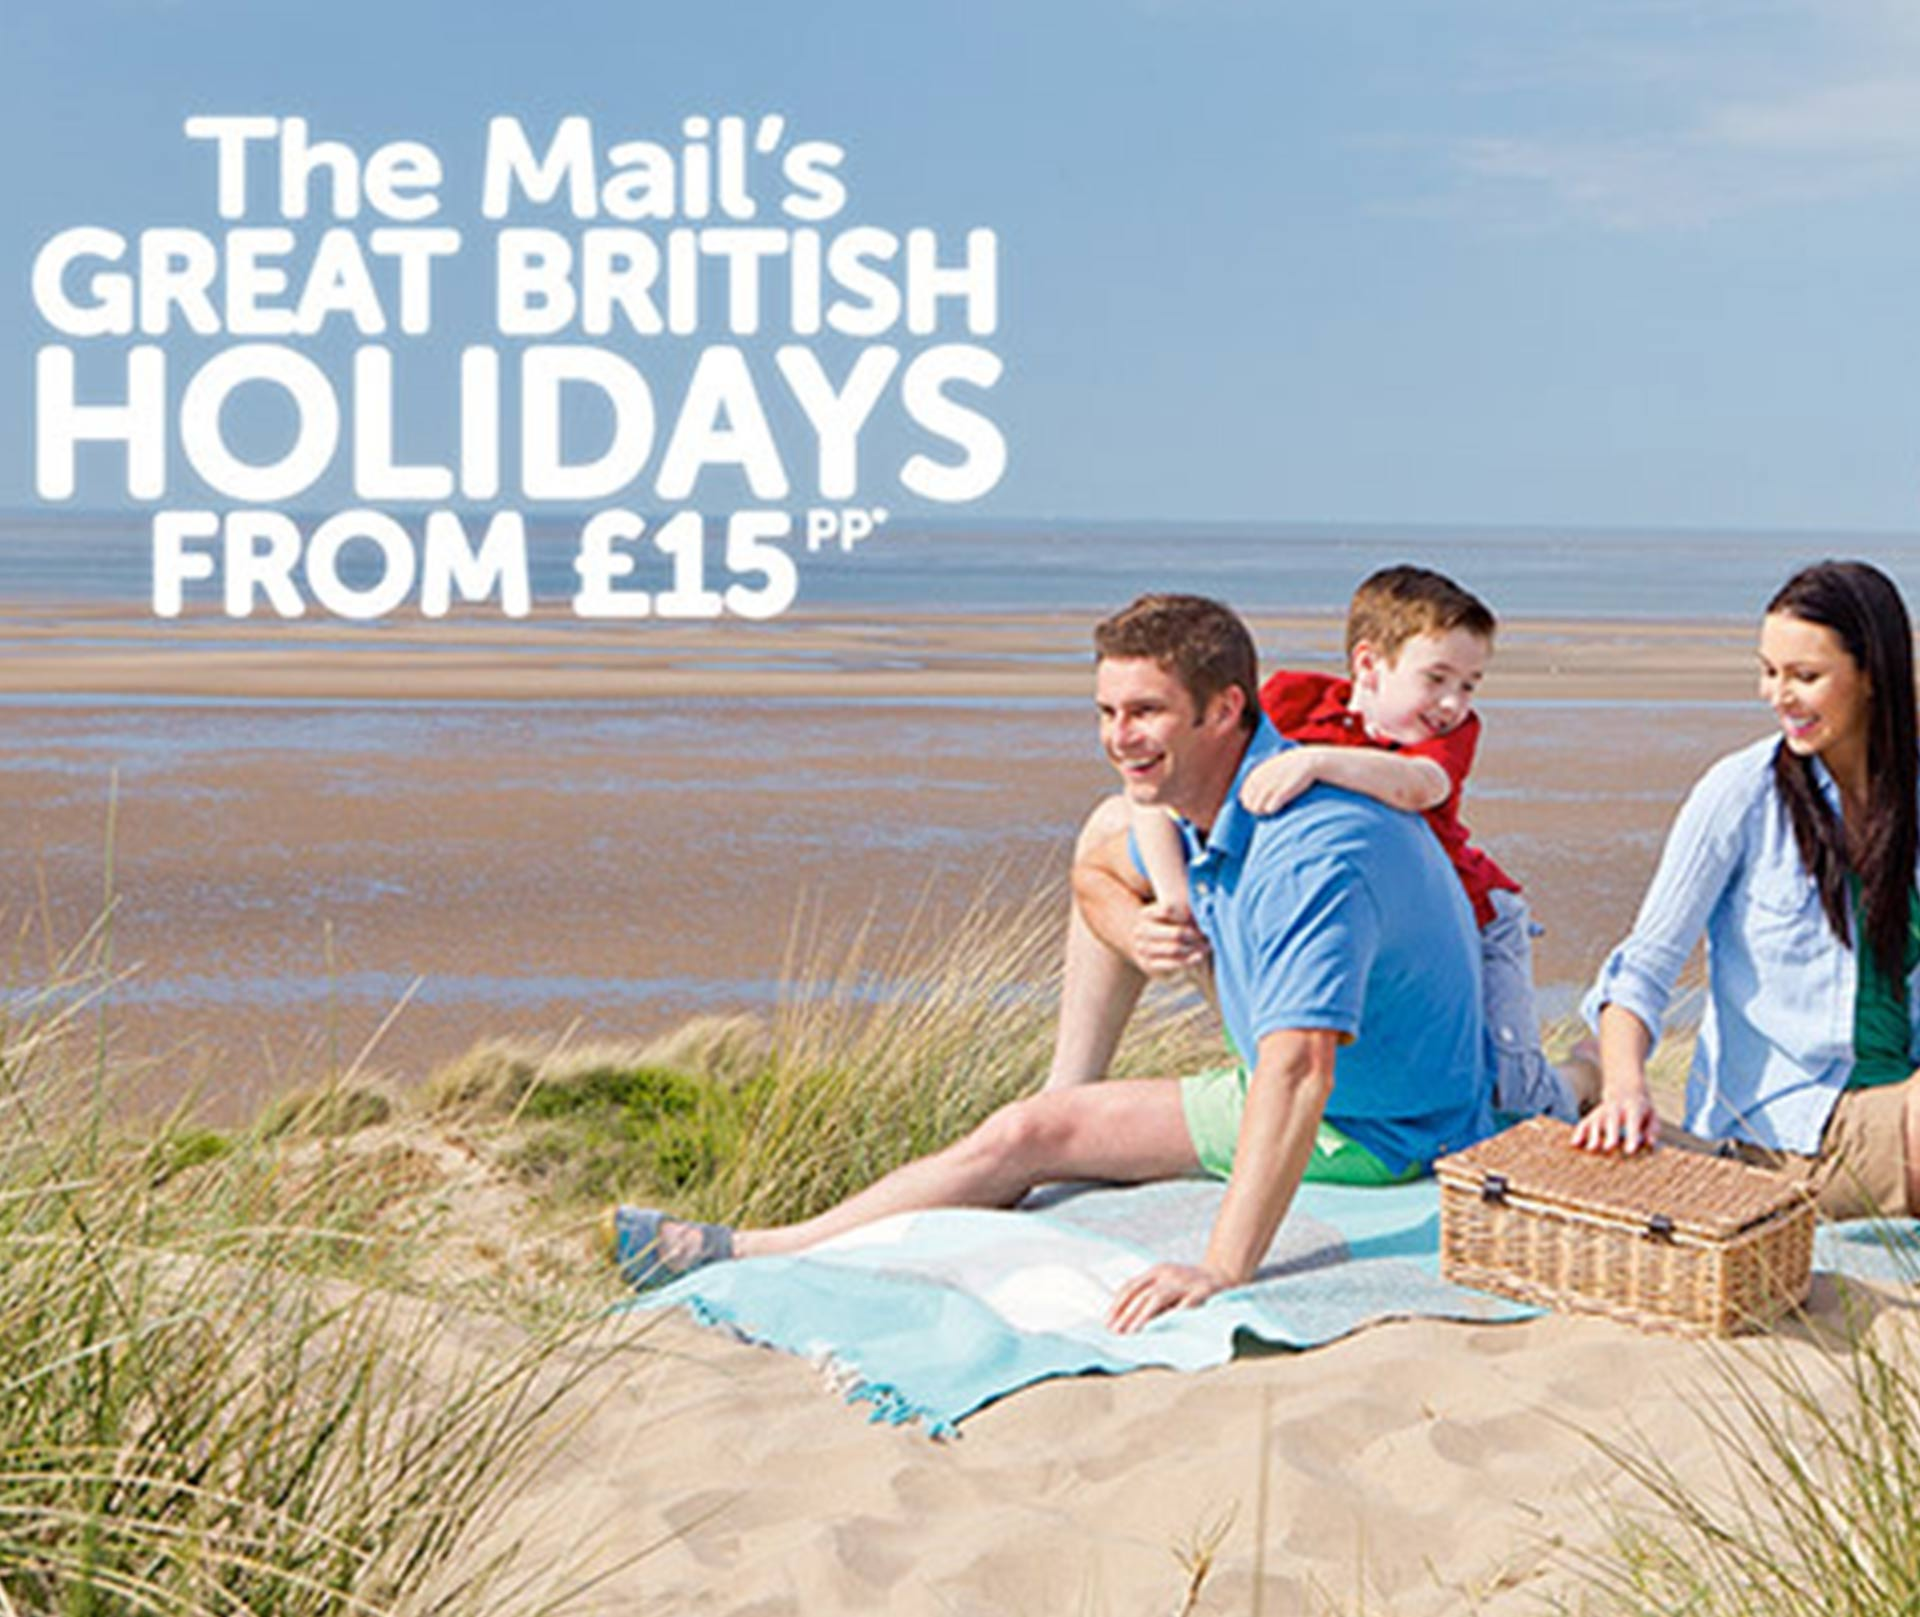 The Mail's Great British Holidays from £15pp – Every Question Answered